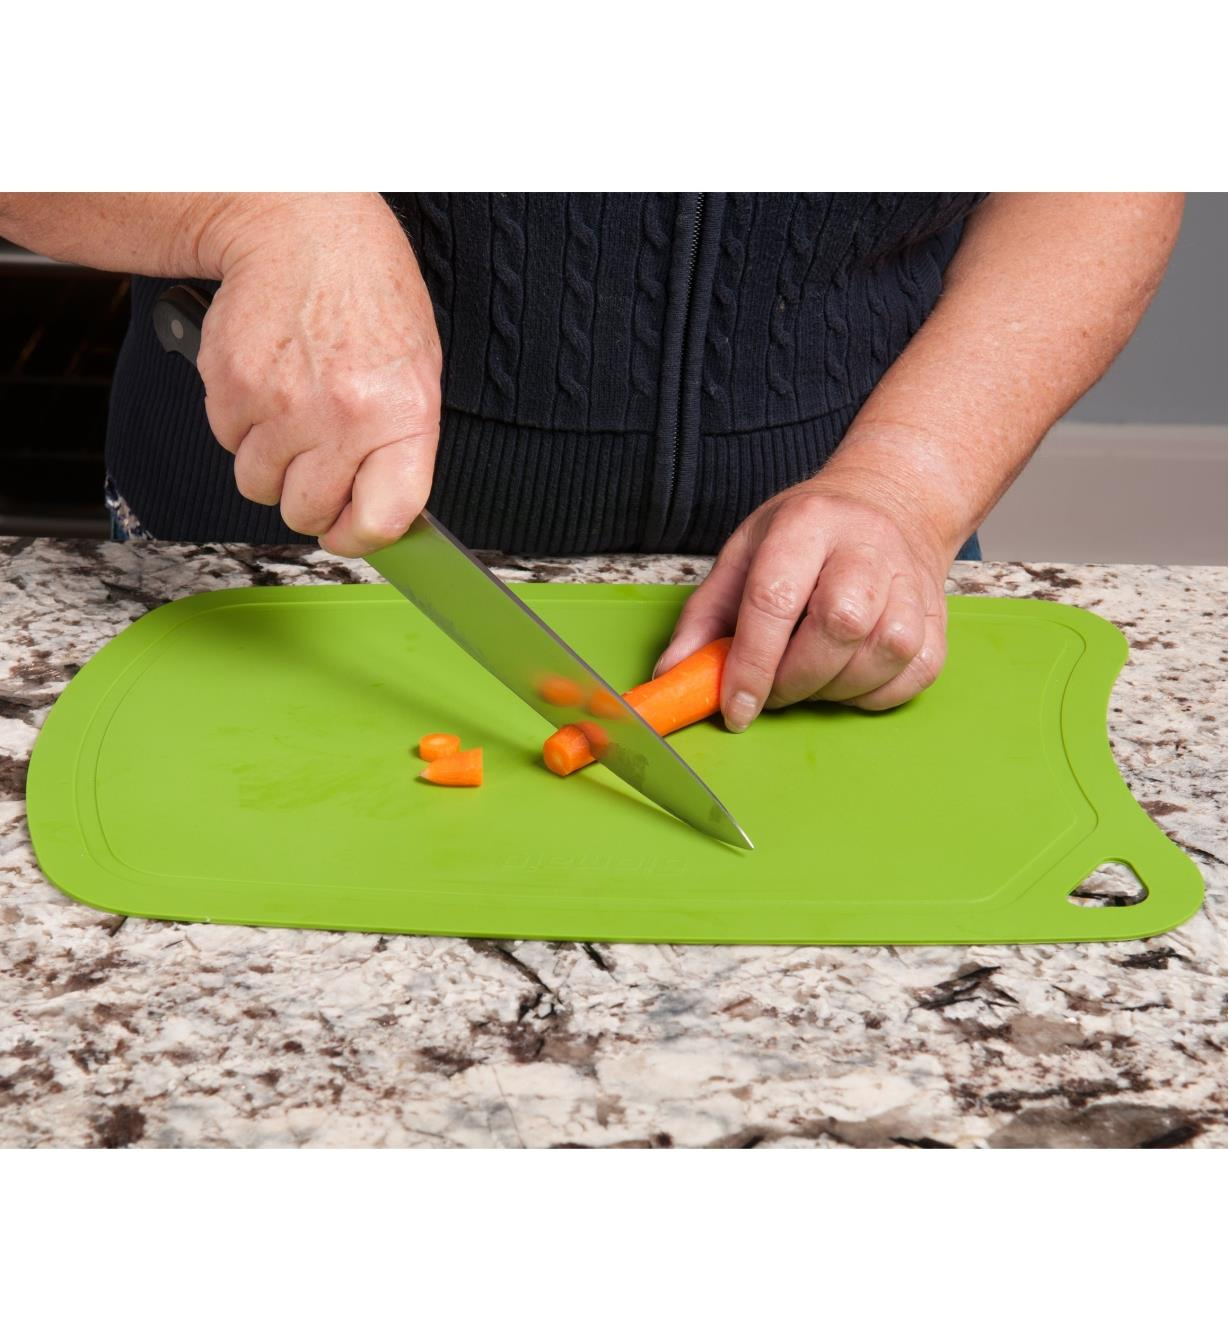 EV411 - Flexible Cutting Mat